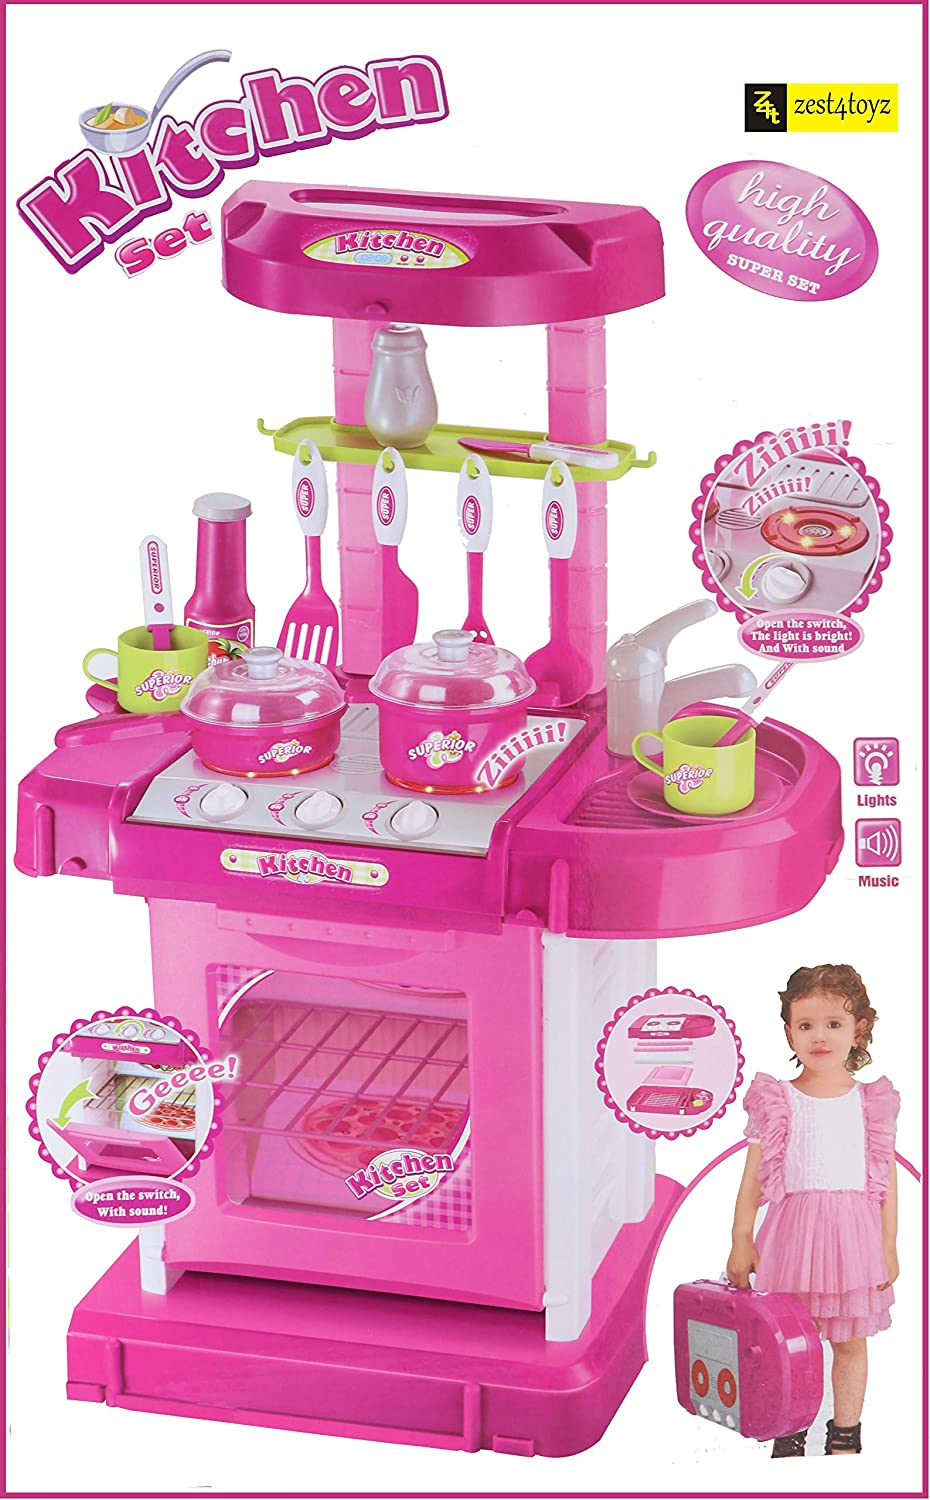 Zest 3 Toyz Kitchen Set Kids Luxury Battery Operated Kitchen Super Set Toy   Kitchen Set for Kids Girls - Pink